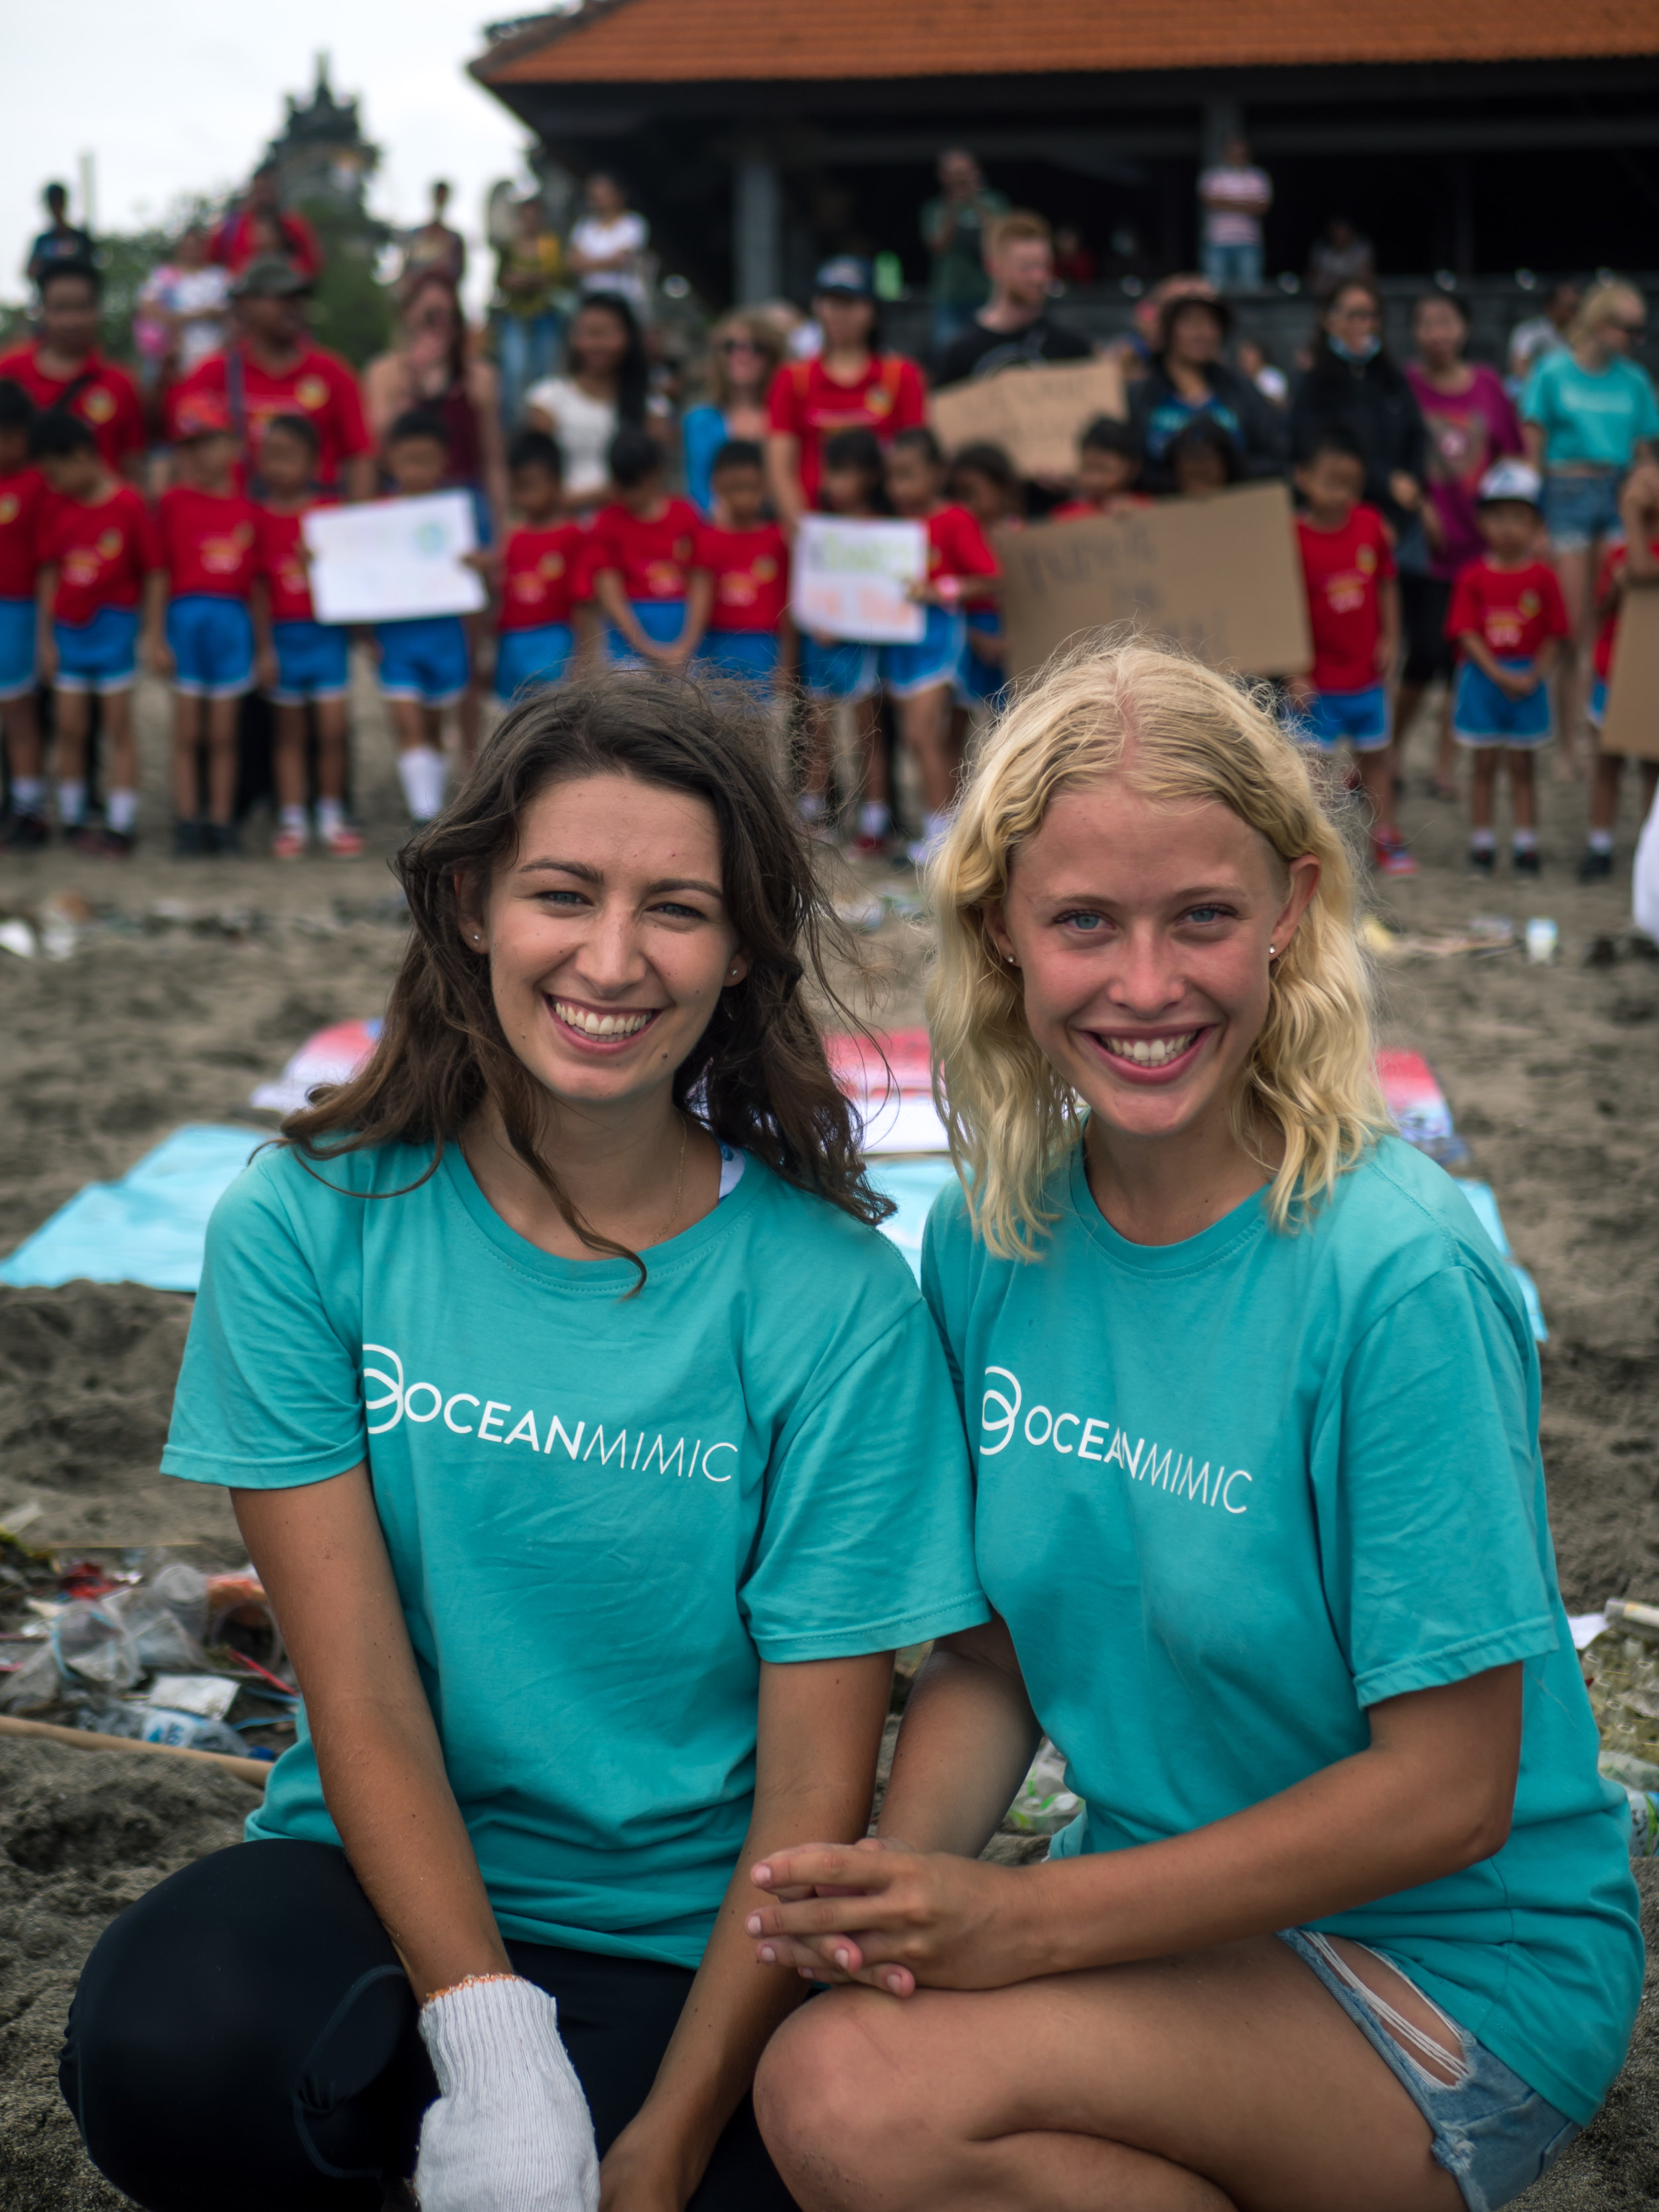 Emma and Chelsea, co-founders of Ocean Mimic. © Ocean Mimic